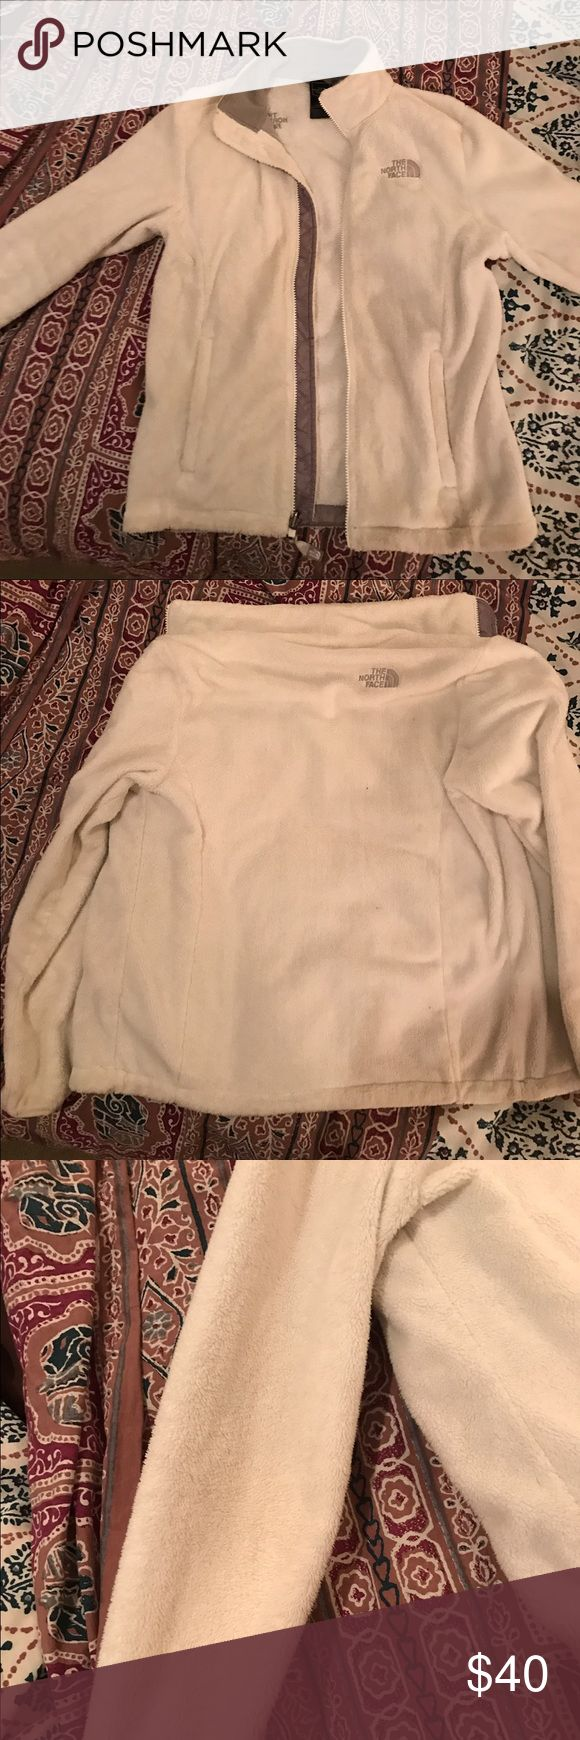 woman's north face jacket white north face jacket, worn a few times, some marks on the one sleeve but other than that it is in perfect condition! North Face Jackets & Coats